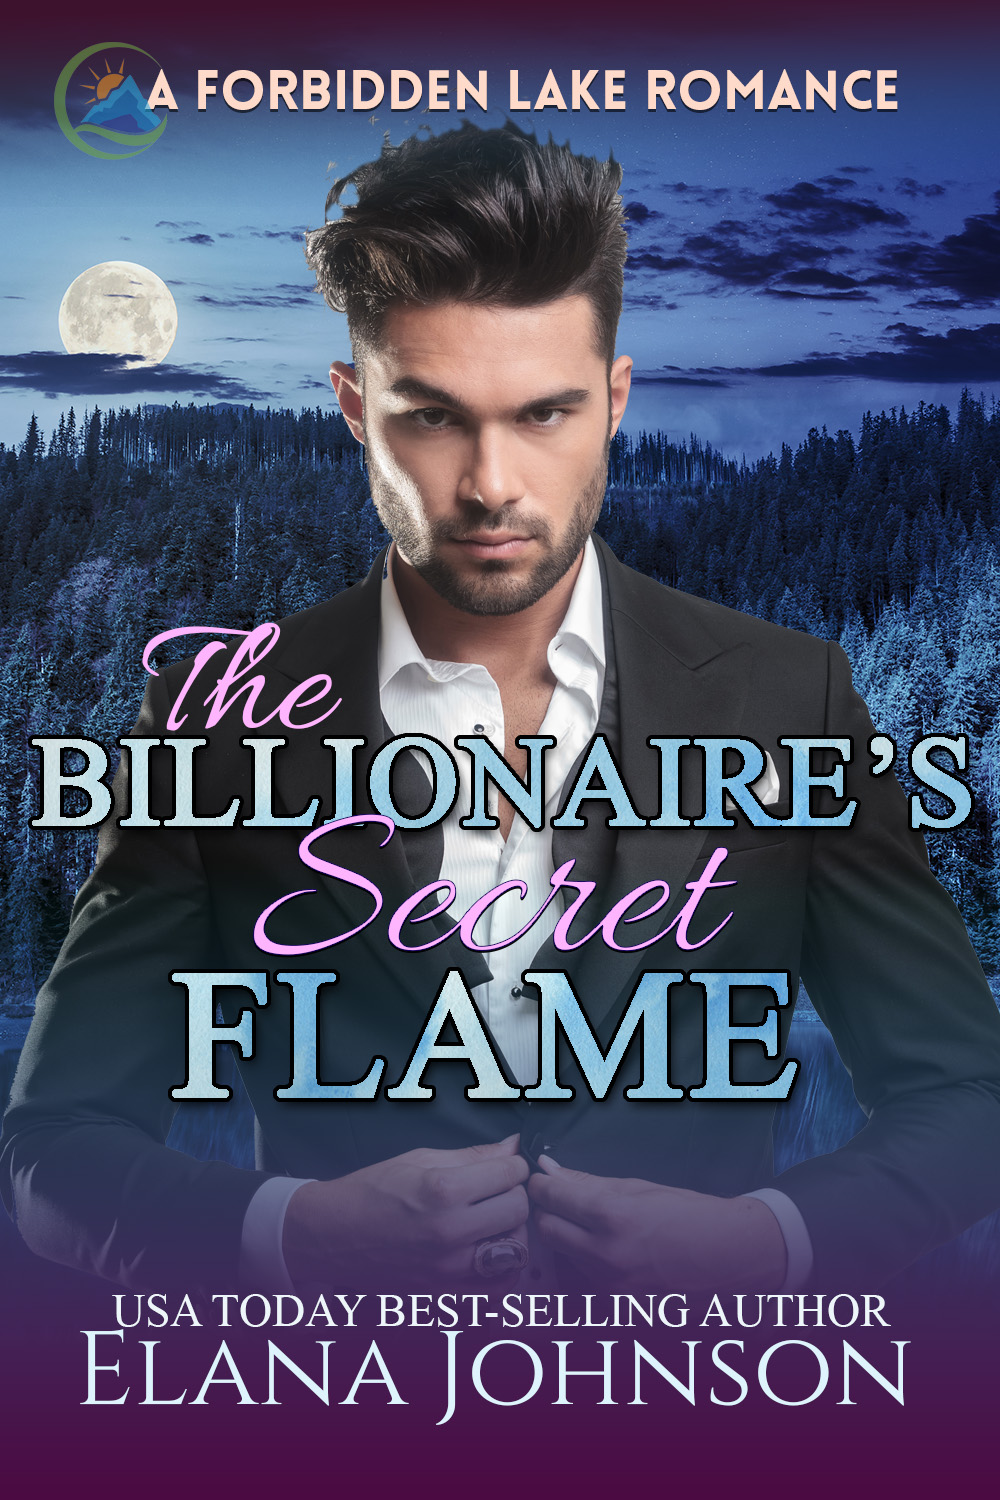 Billionaires Secret Flame NEWCOVER